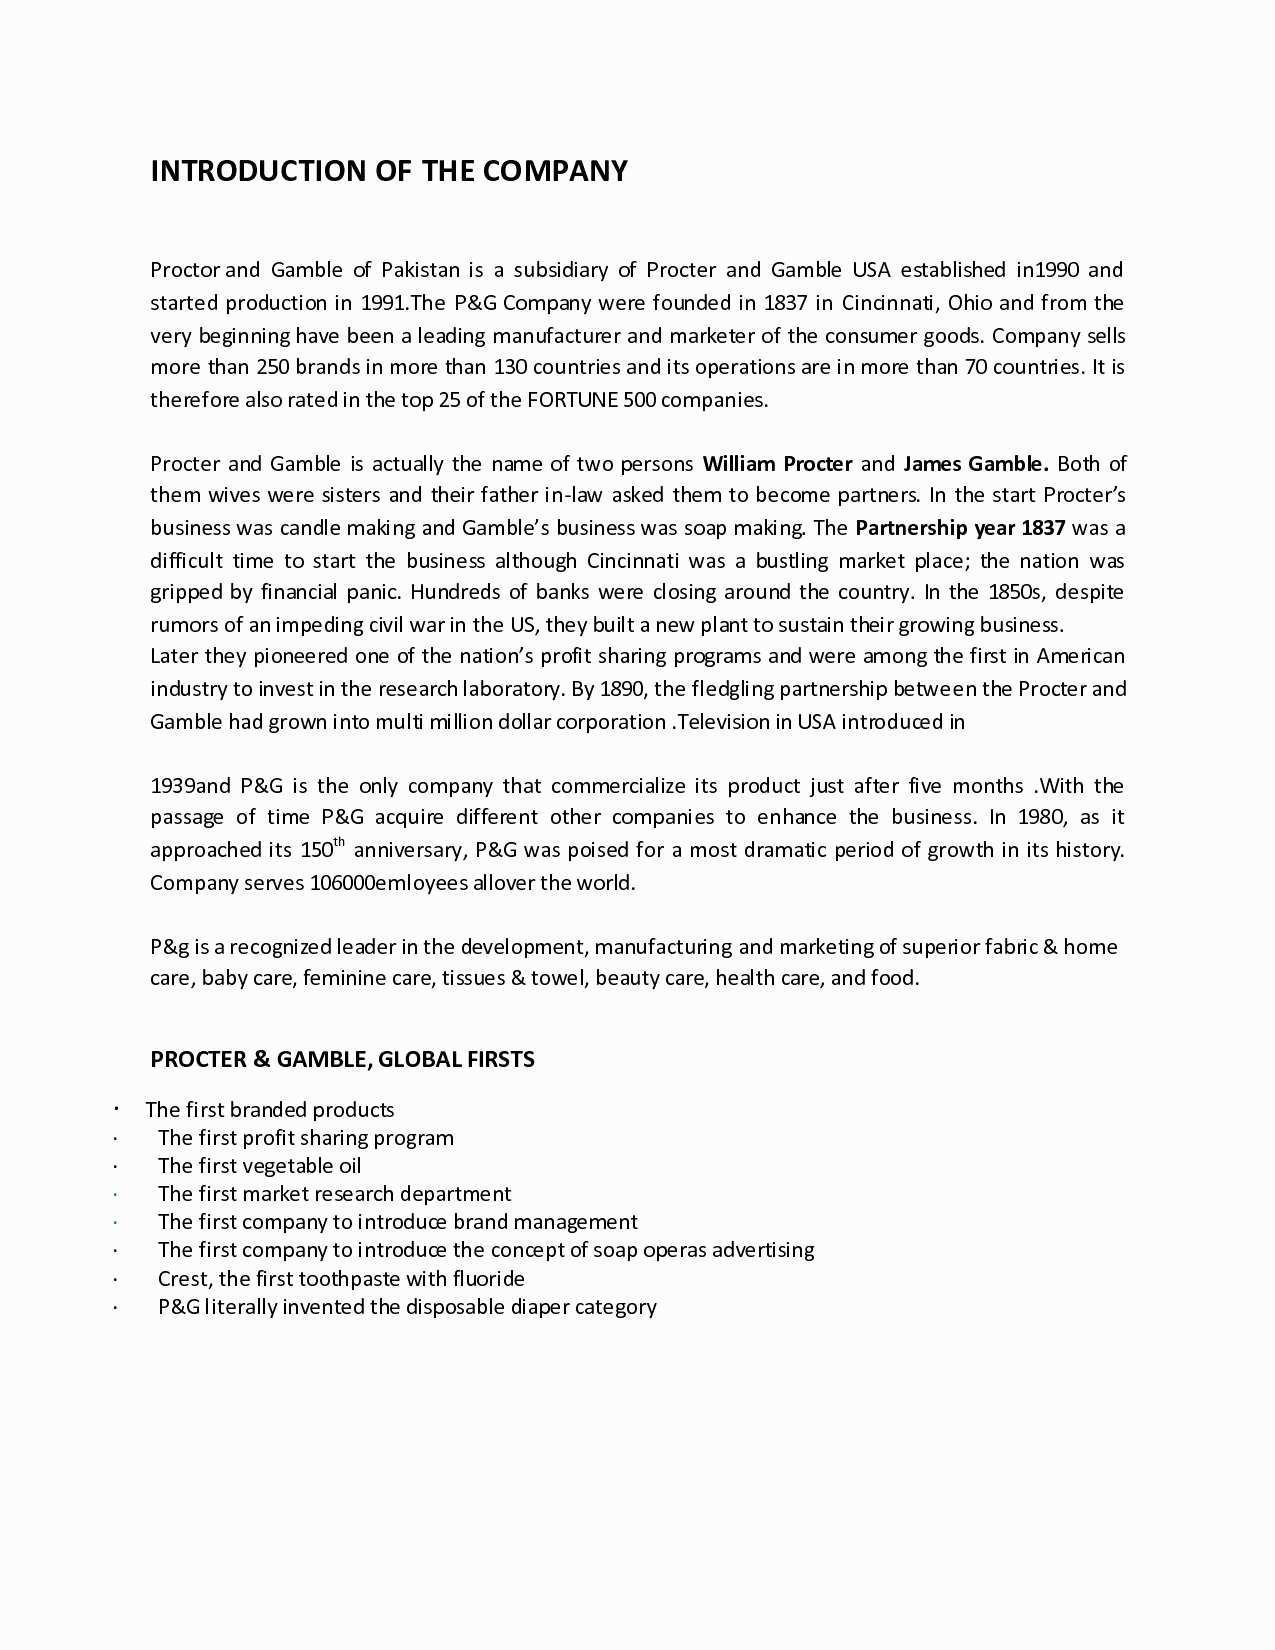 Offer to Purchase Letter Template - Job Fer Letter Template Us Copy Od Consultant Cover Letter Fungram